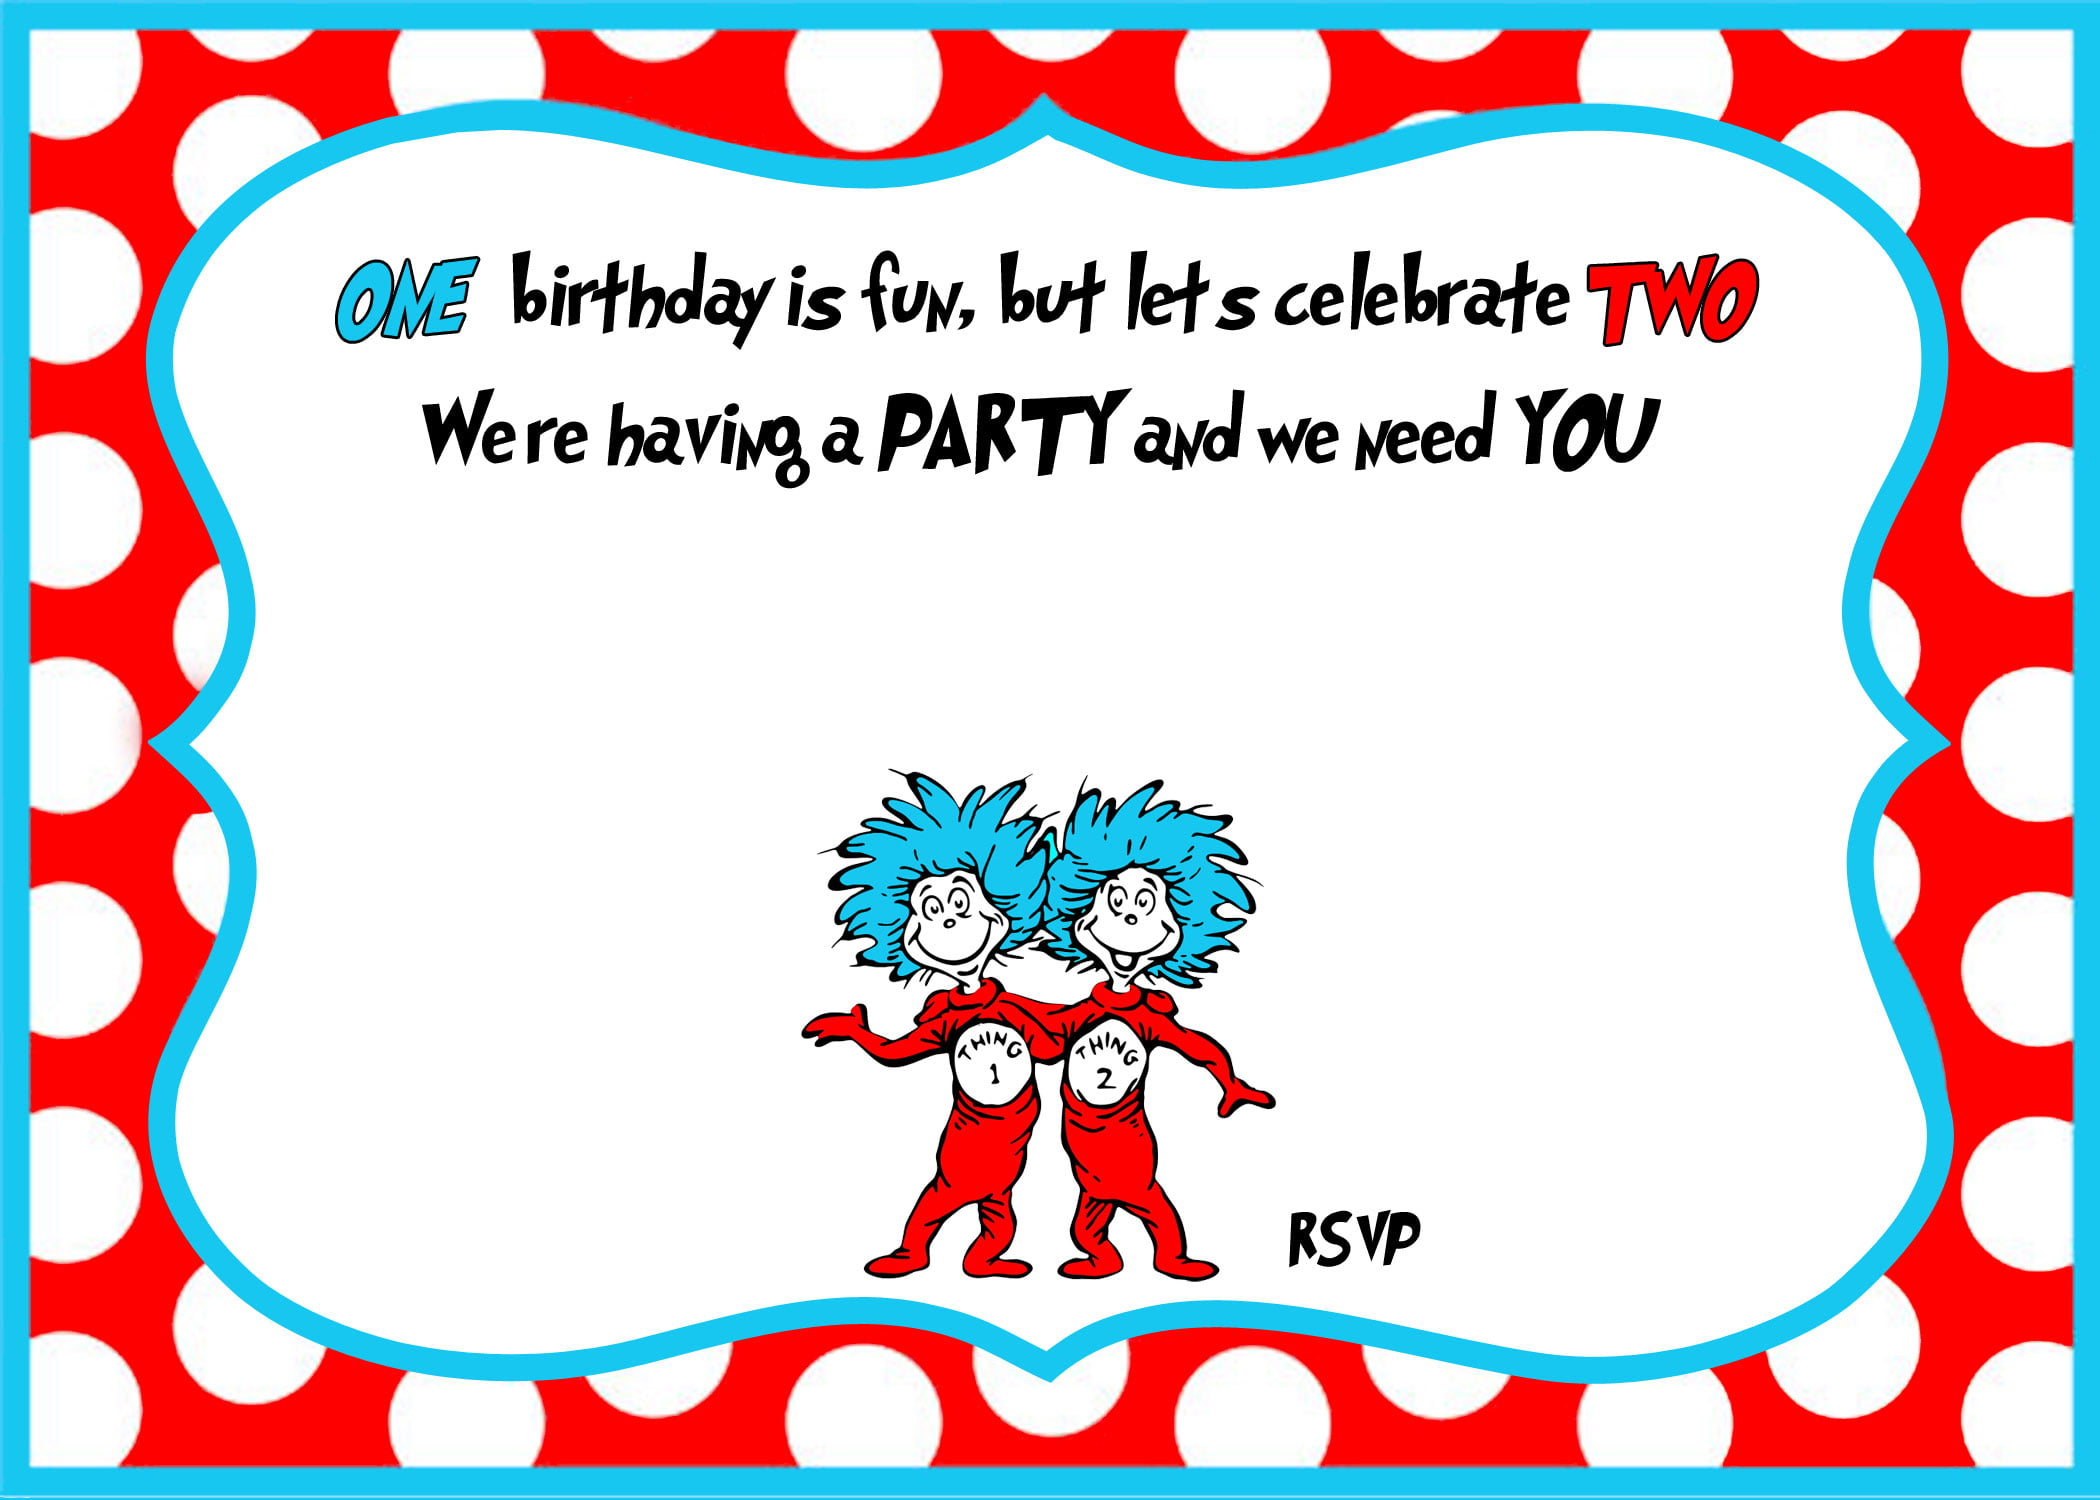 Dr Seuss Birthday Invitation Template For Twins